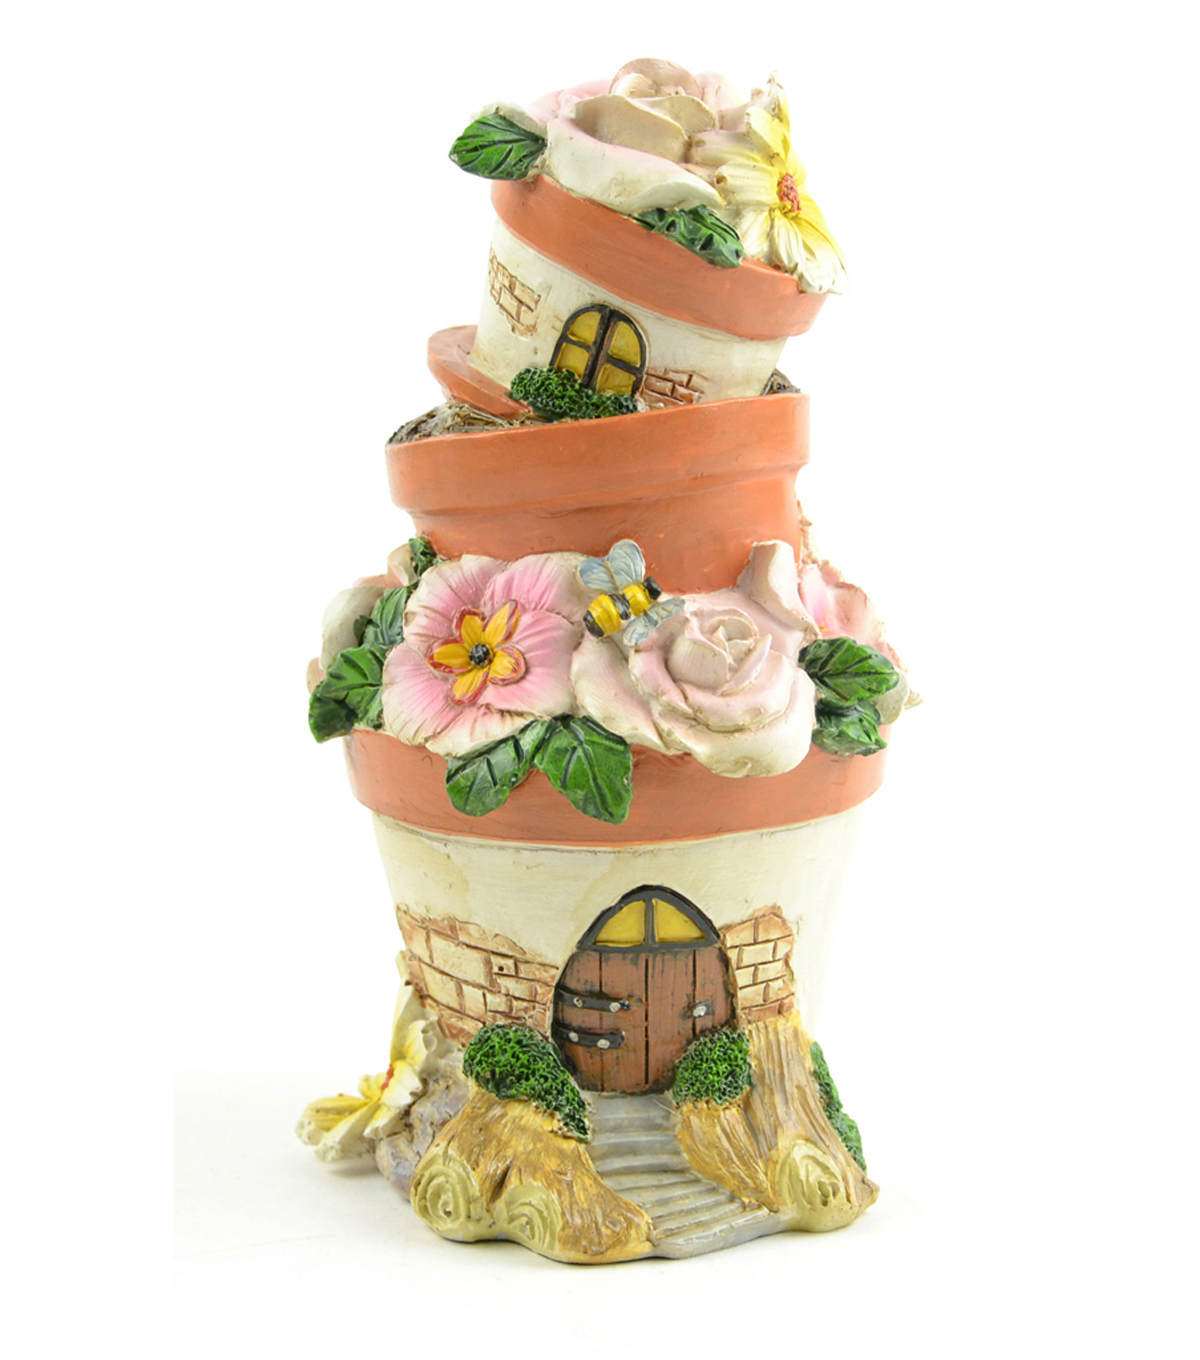 Bloom Room Littles Resin Flowerpot House